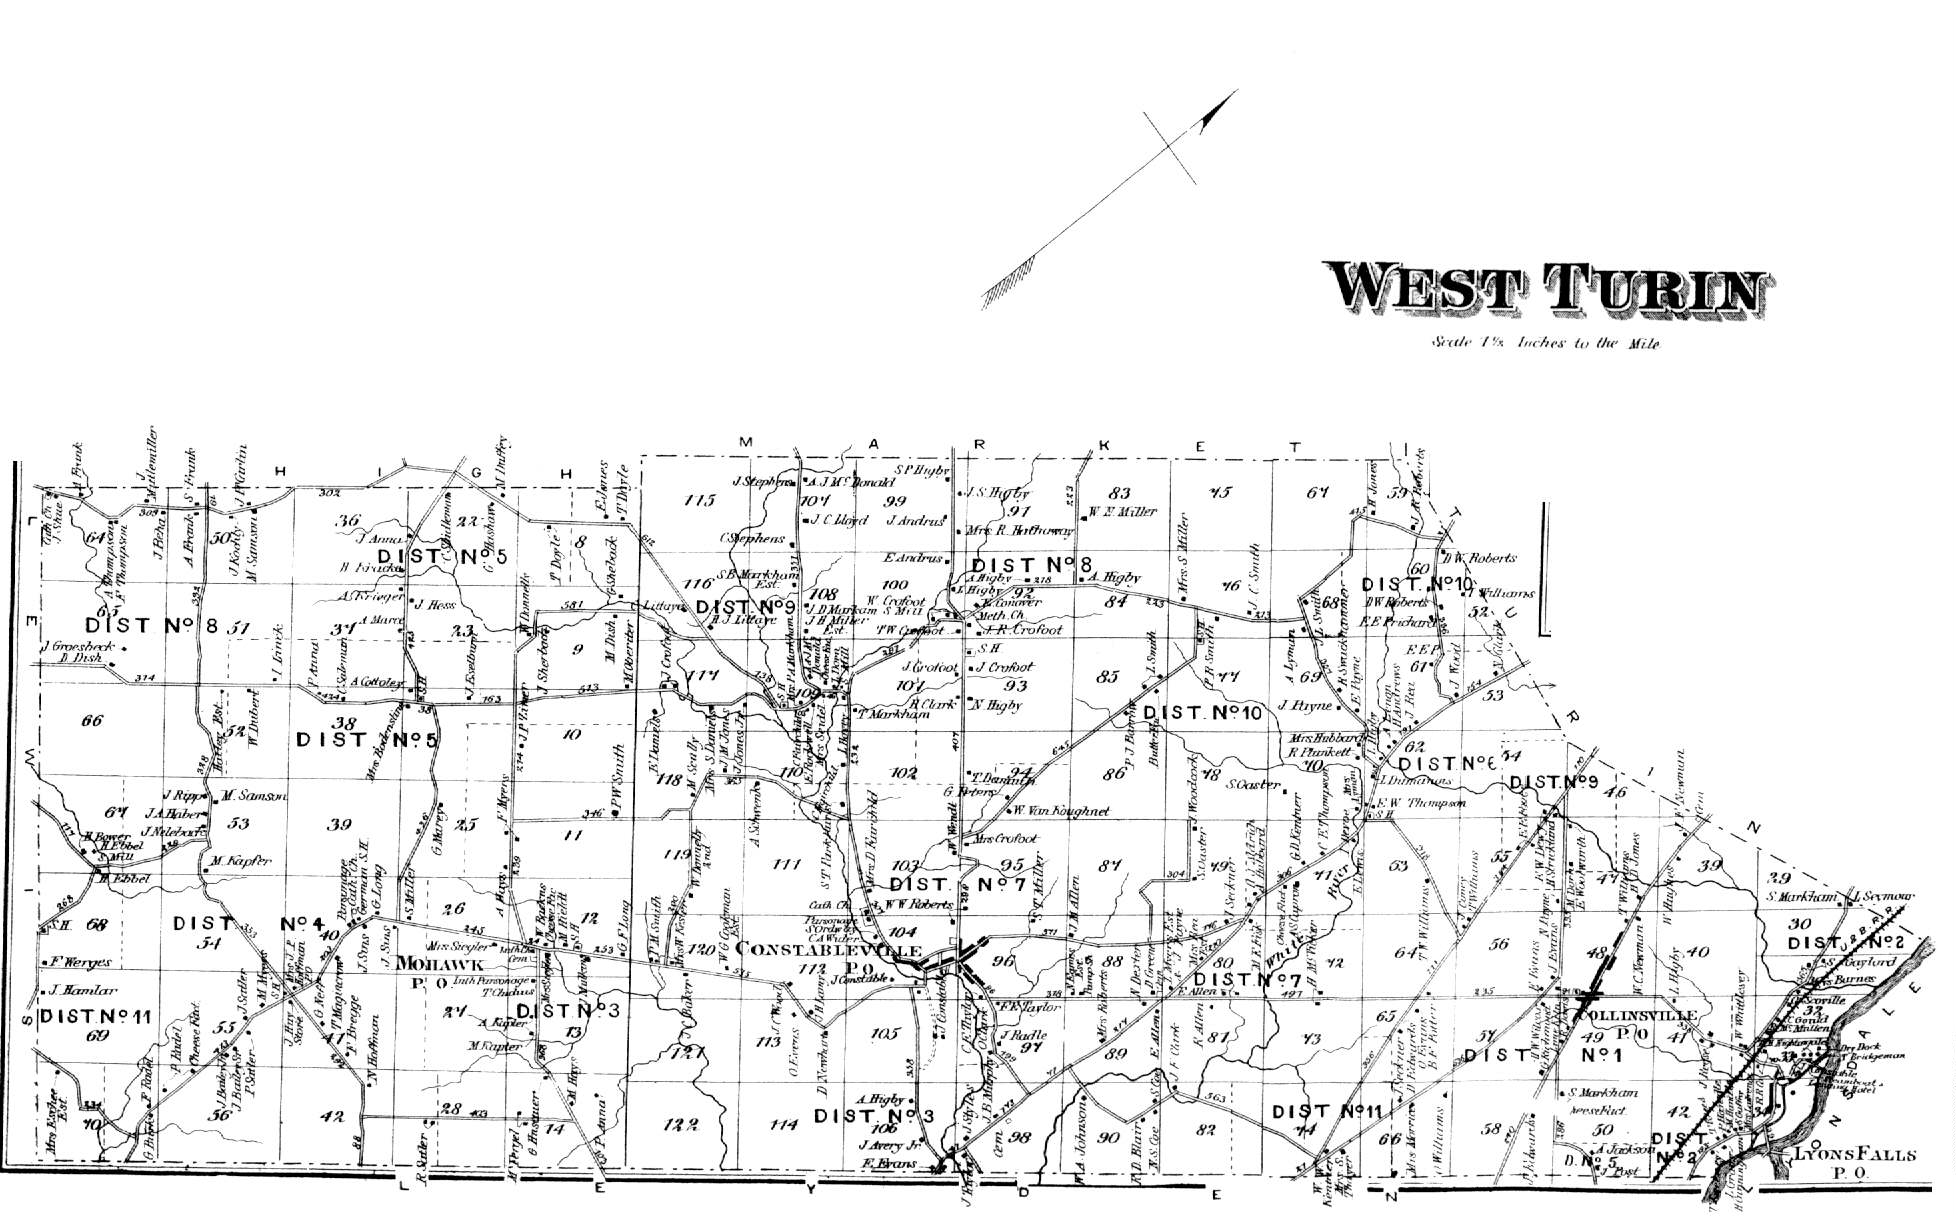 D.G. Beers 1875 Atlas of Lewis County, NYwest turin town